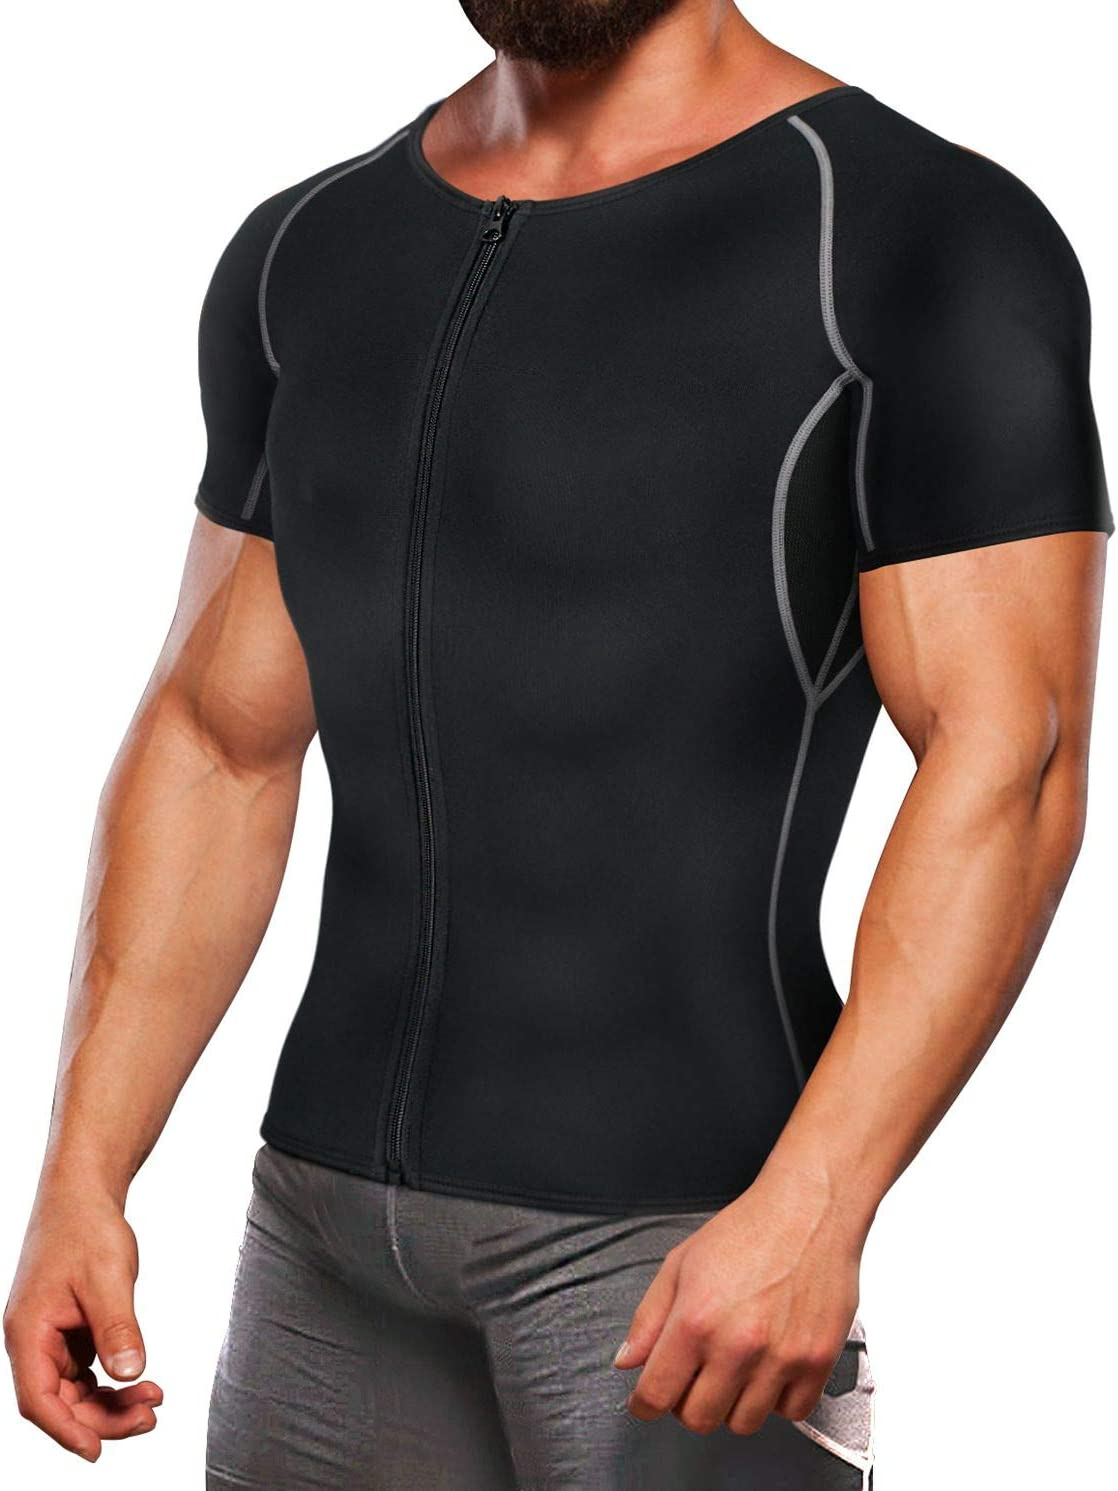 TAILONG Neoprene Sweat Suit Weight Loss Shirt Men Exercise Cloth